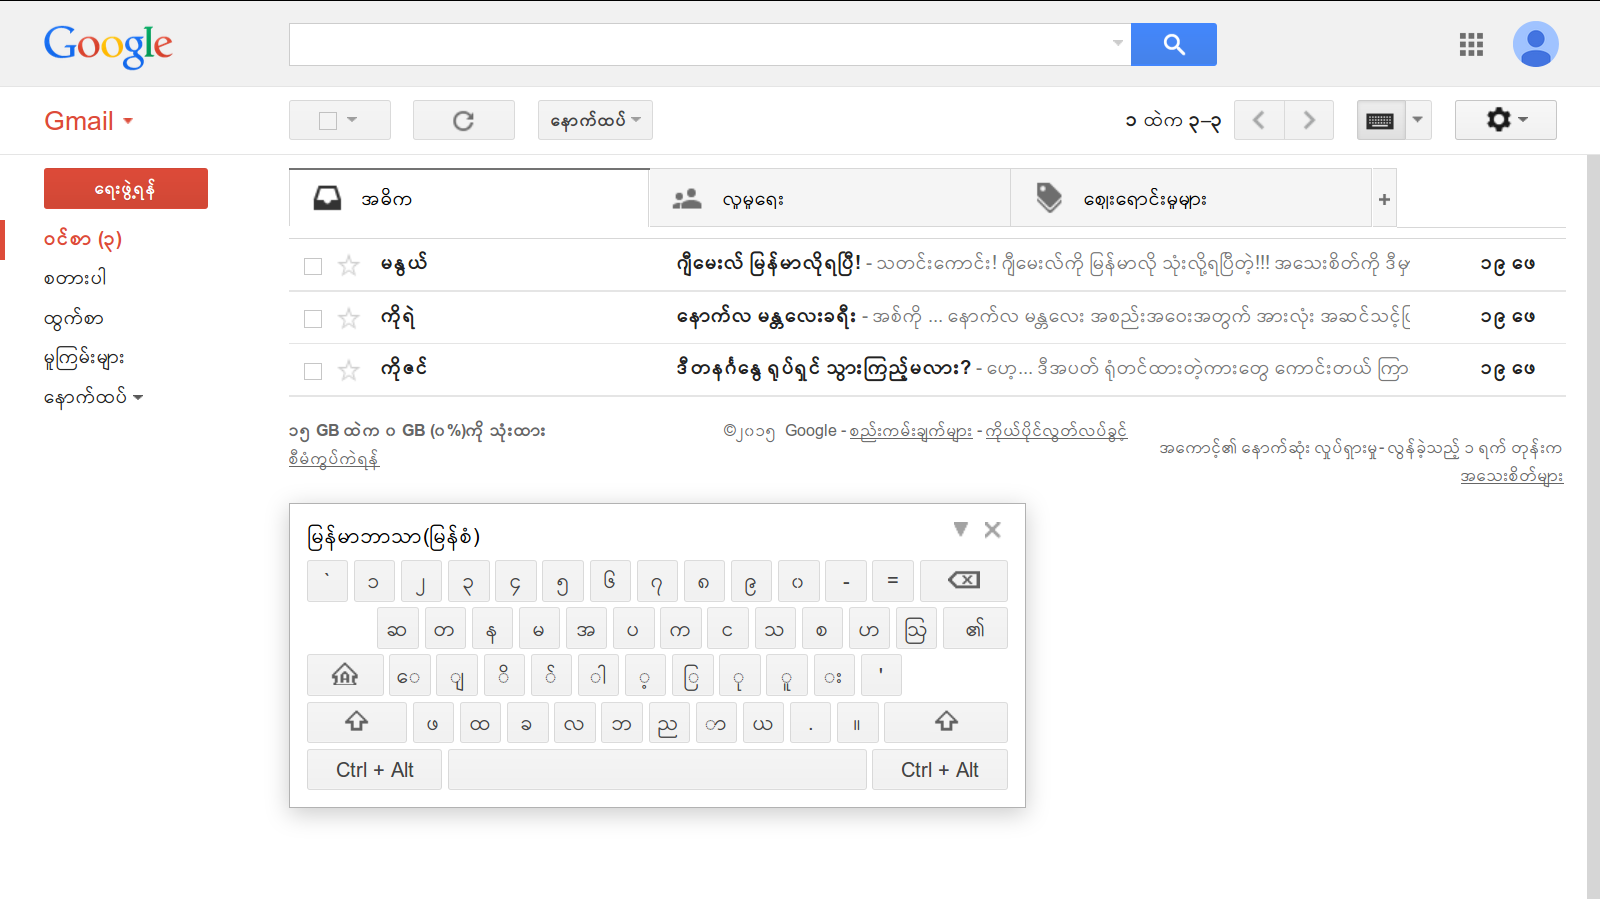 Google Asia Pacific Blog: An email from Gmail to the people of Myanmar